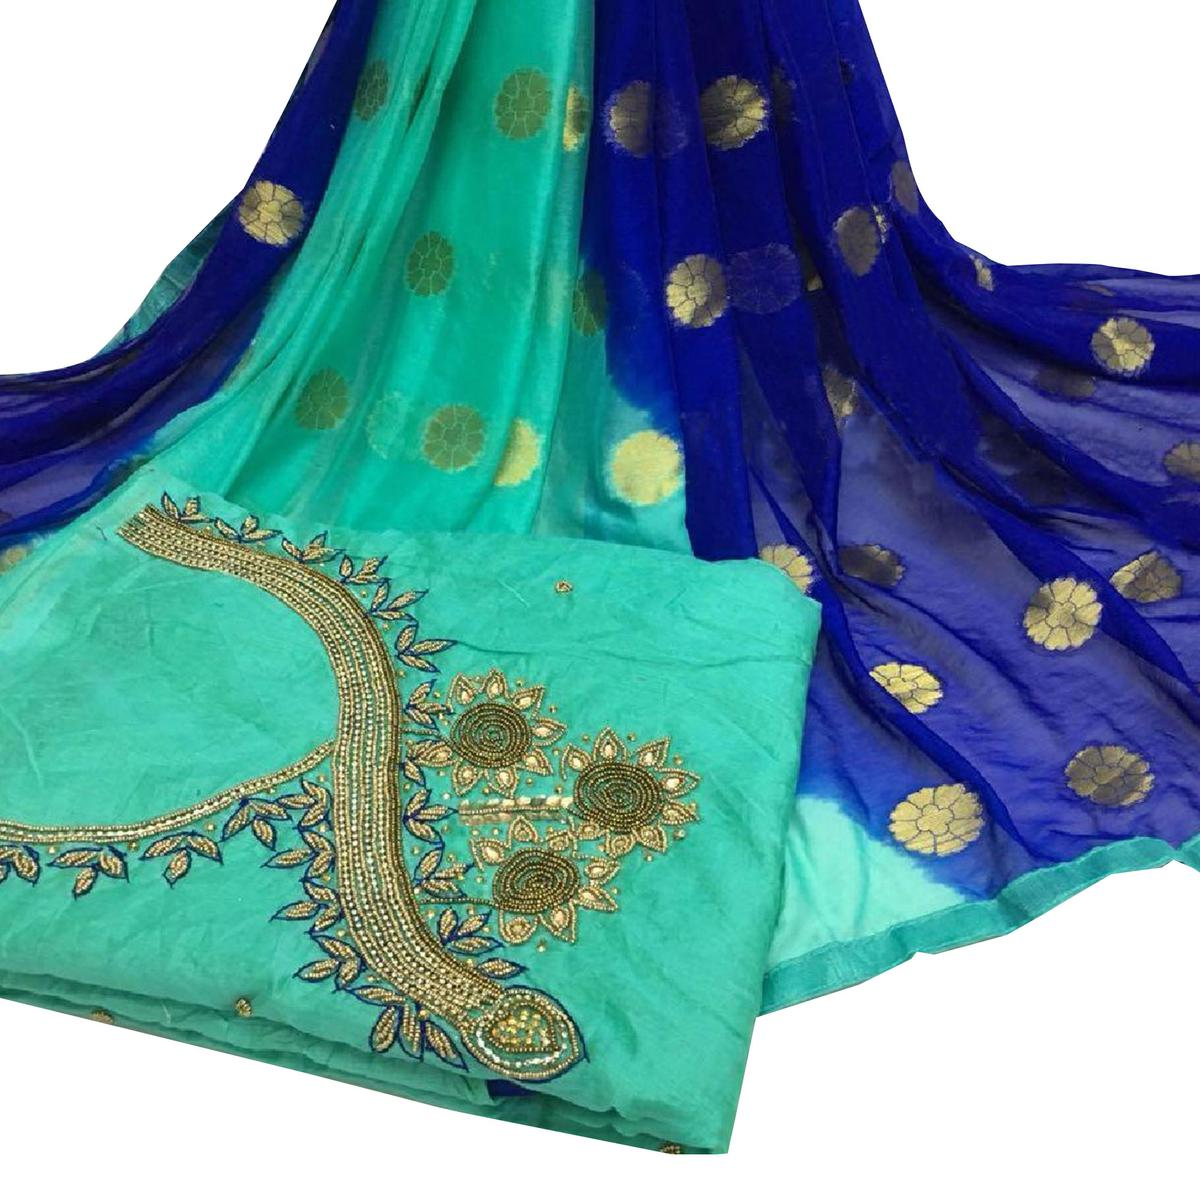 Stunning Rama Green Colored Partywear Embroidered Modal Chanderi Cotton Dress Material